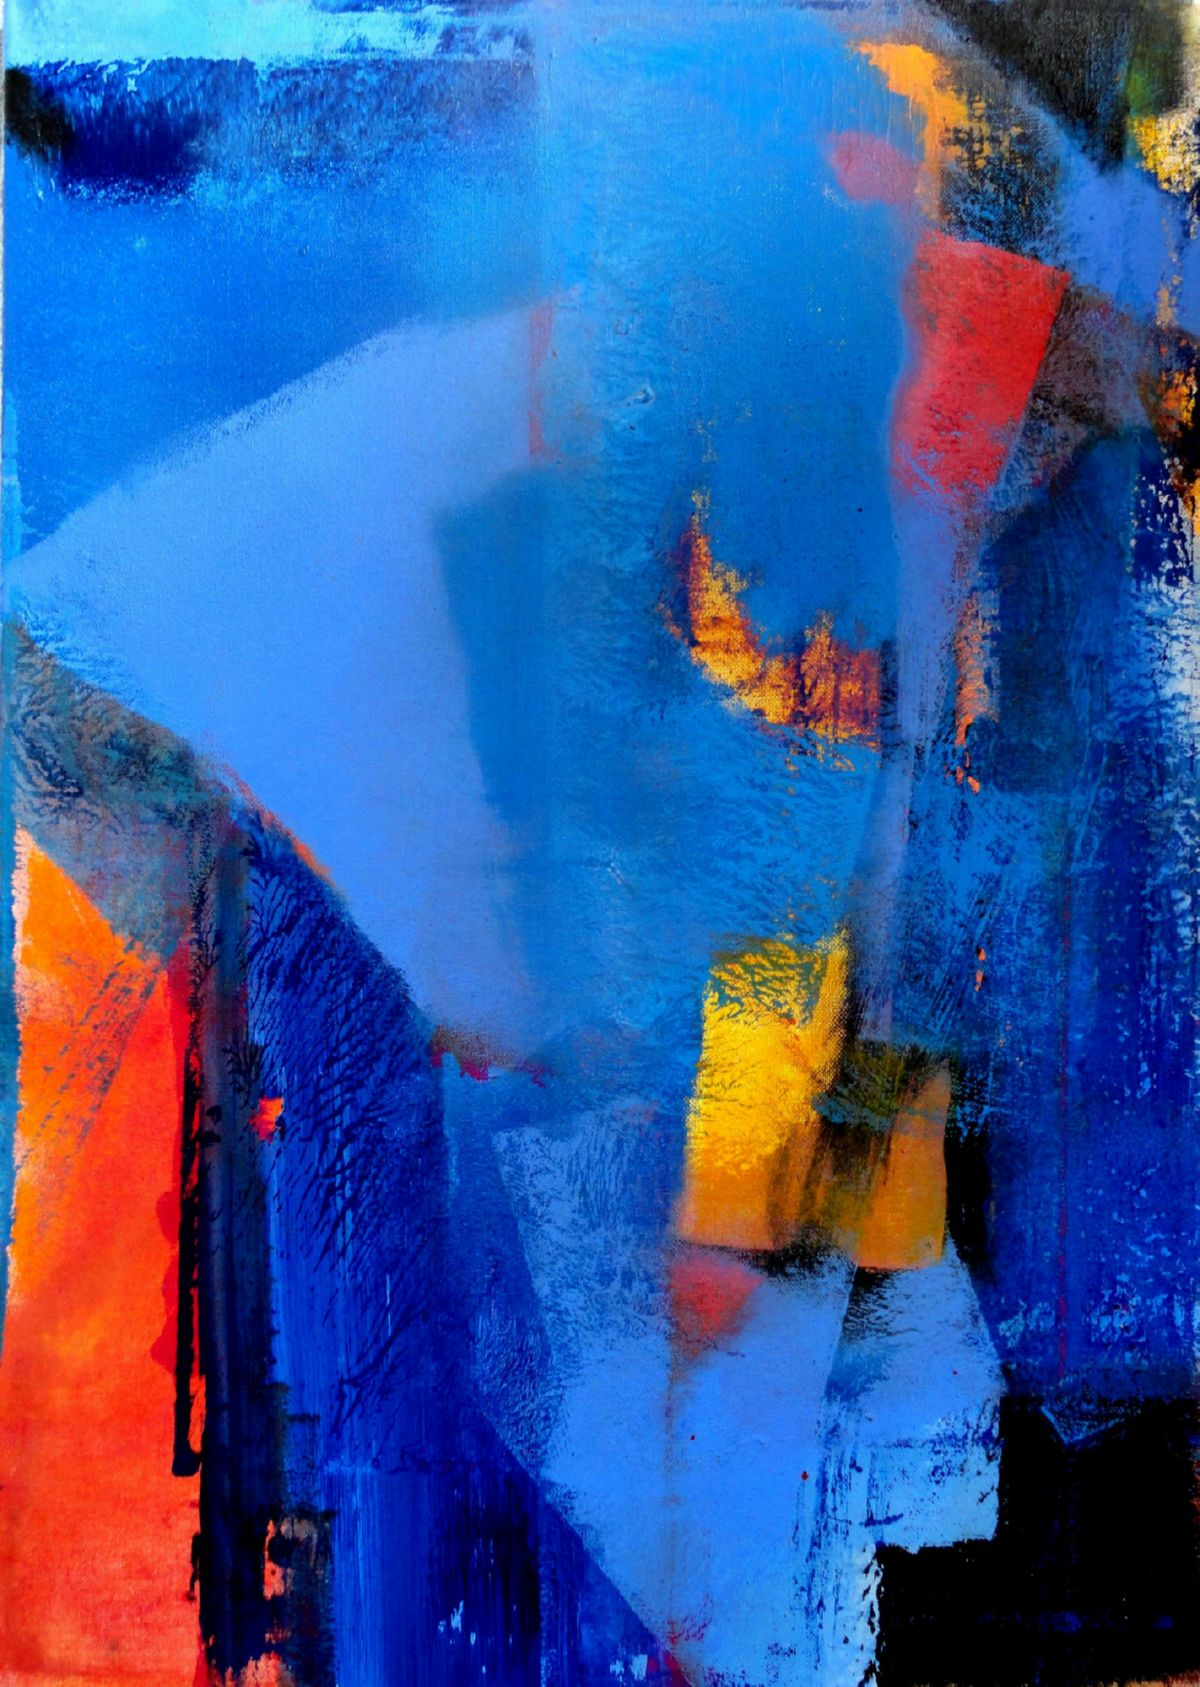 Uros Paternu 2013 Untitled 06 artwork by Uros Paternu - art listed for sale on Artplode